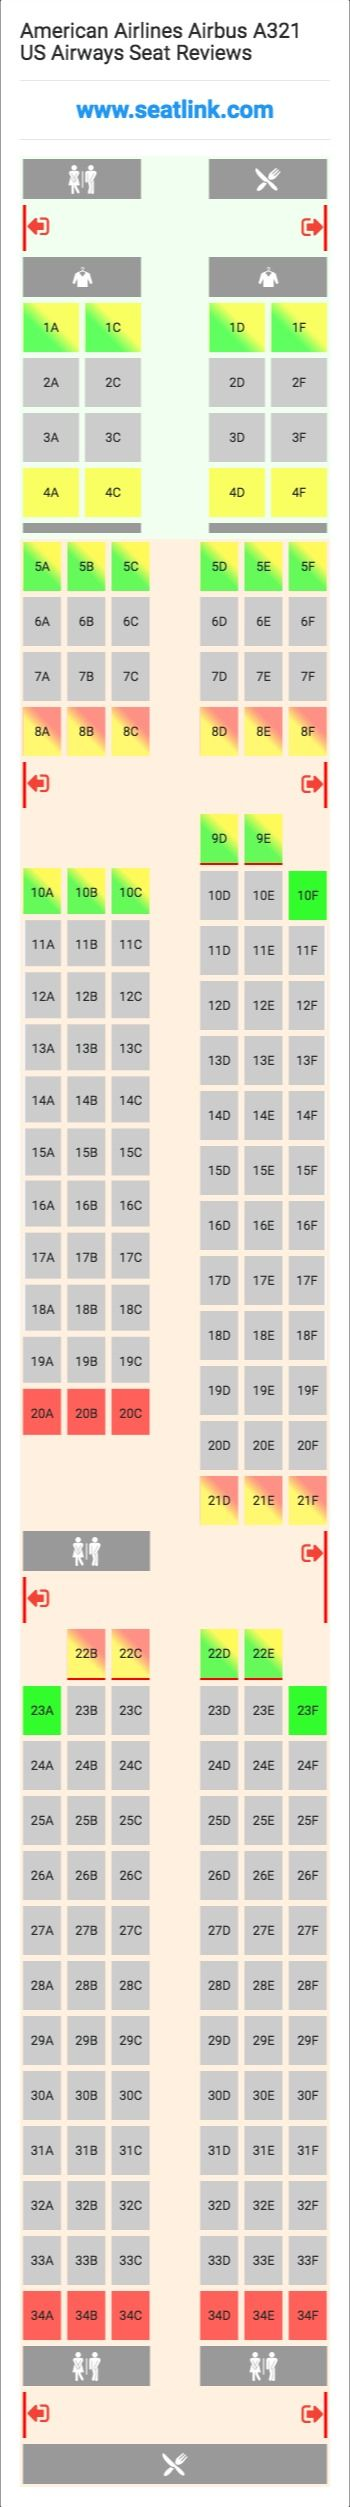 American Airlines Airbus A321 US Airways (321) Seat Map | Airline ...